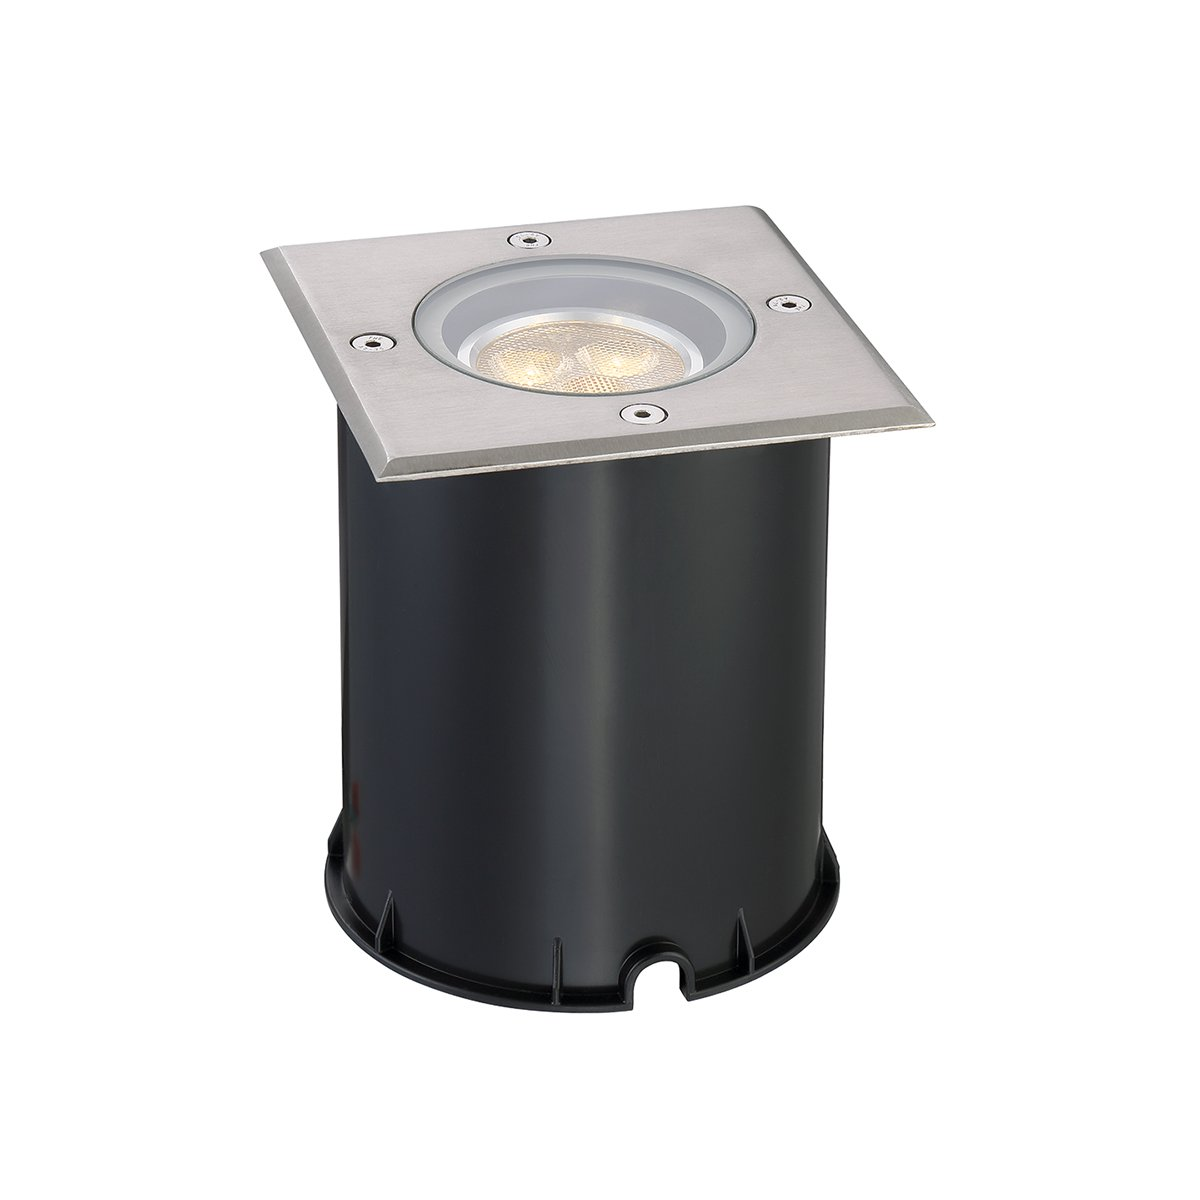 Eurofase 31596-015 Inground Outdoor Square LED, Stainless Steel